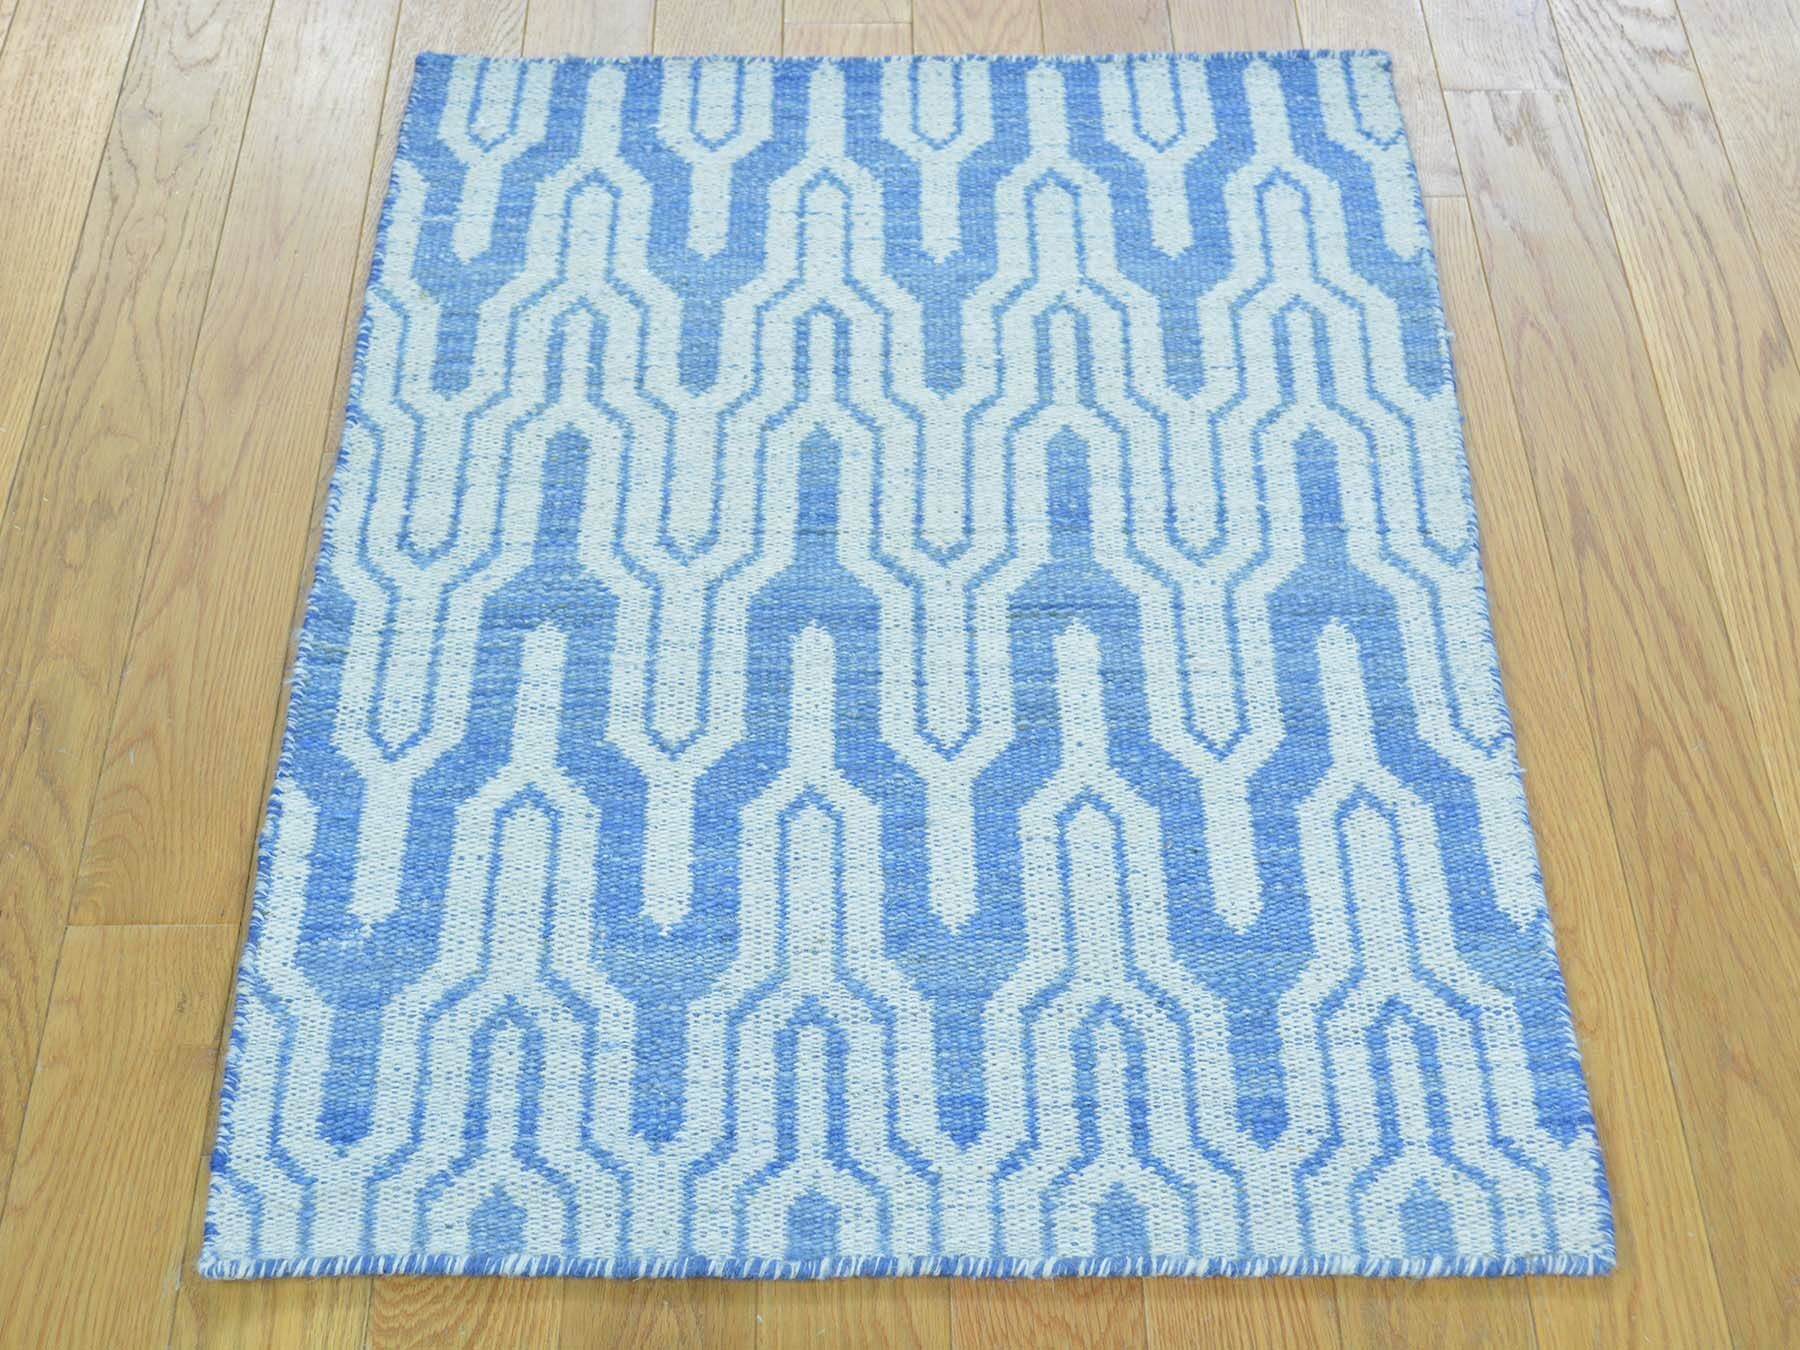 One-of-a-Kind Bottorff Reversible Handmade Kilim Blue Wool Area Rug